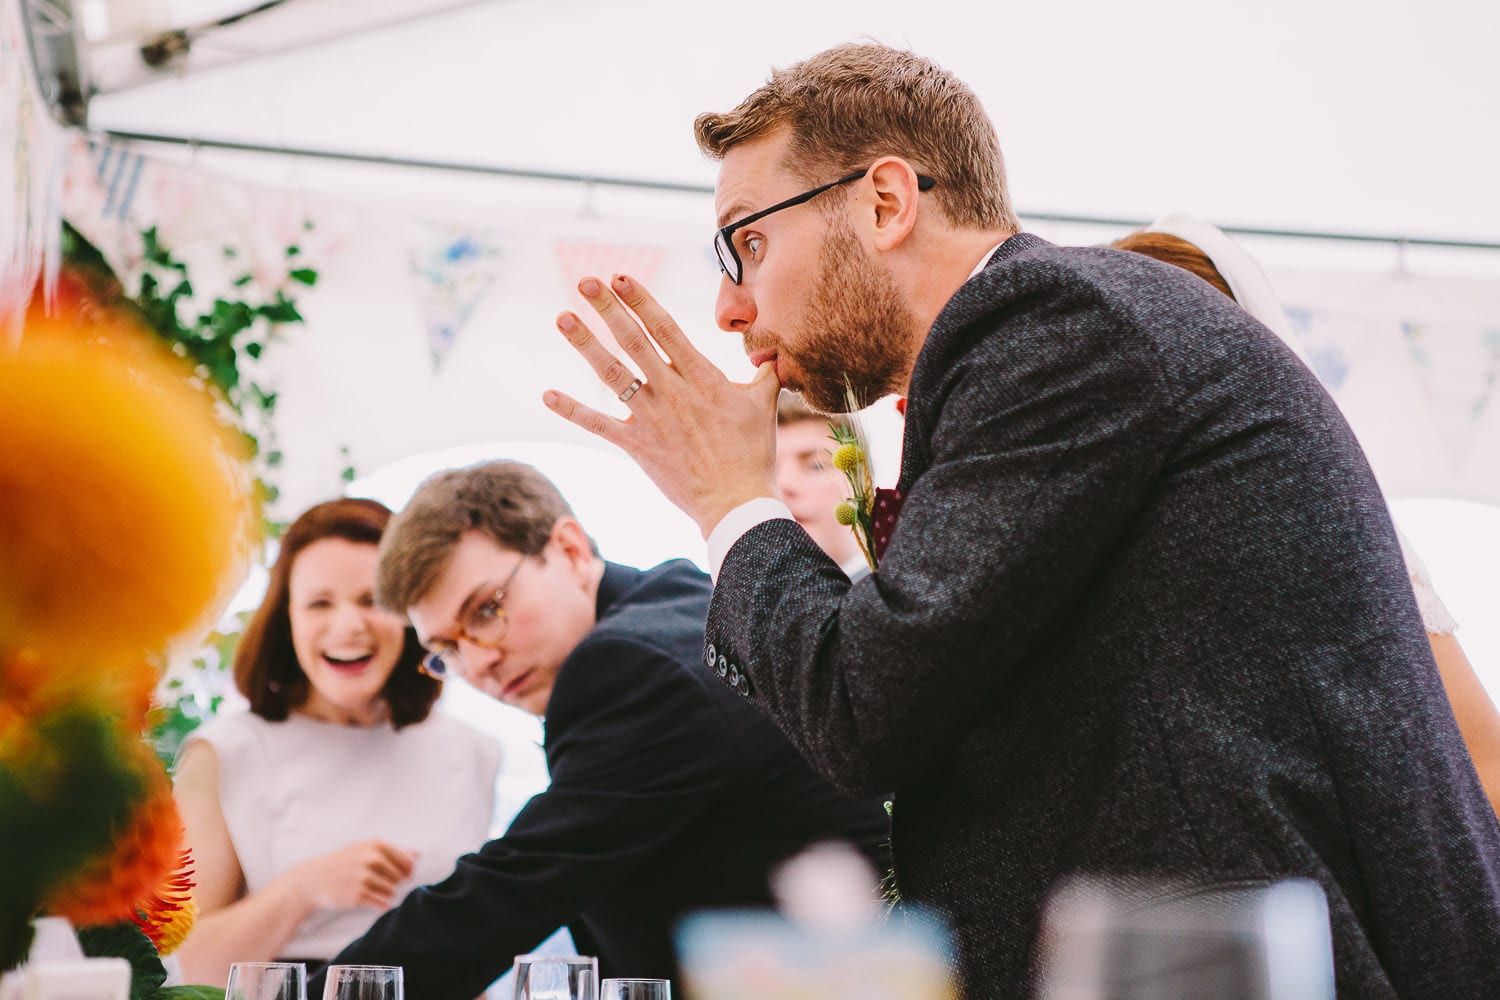 The groom eating cakes